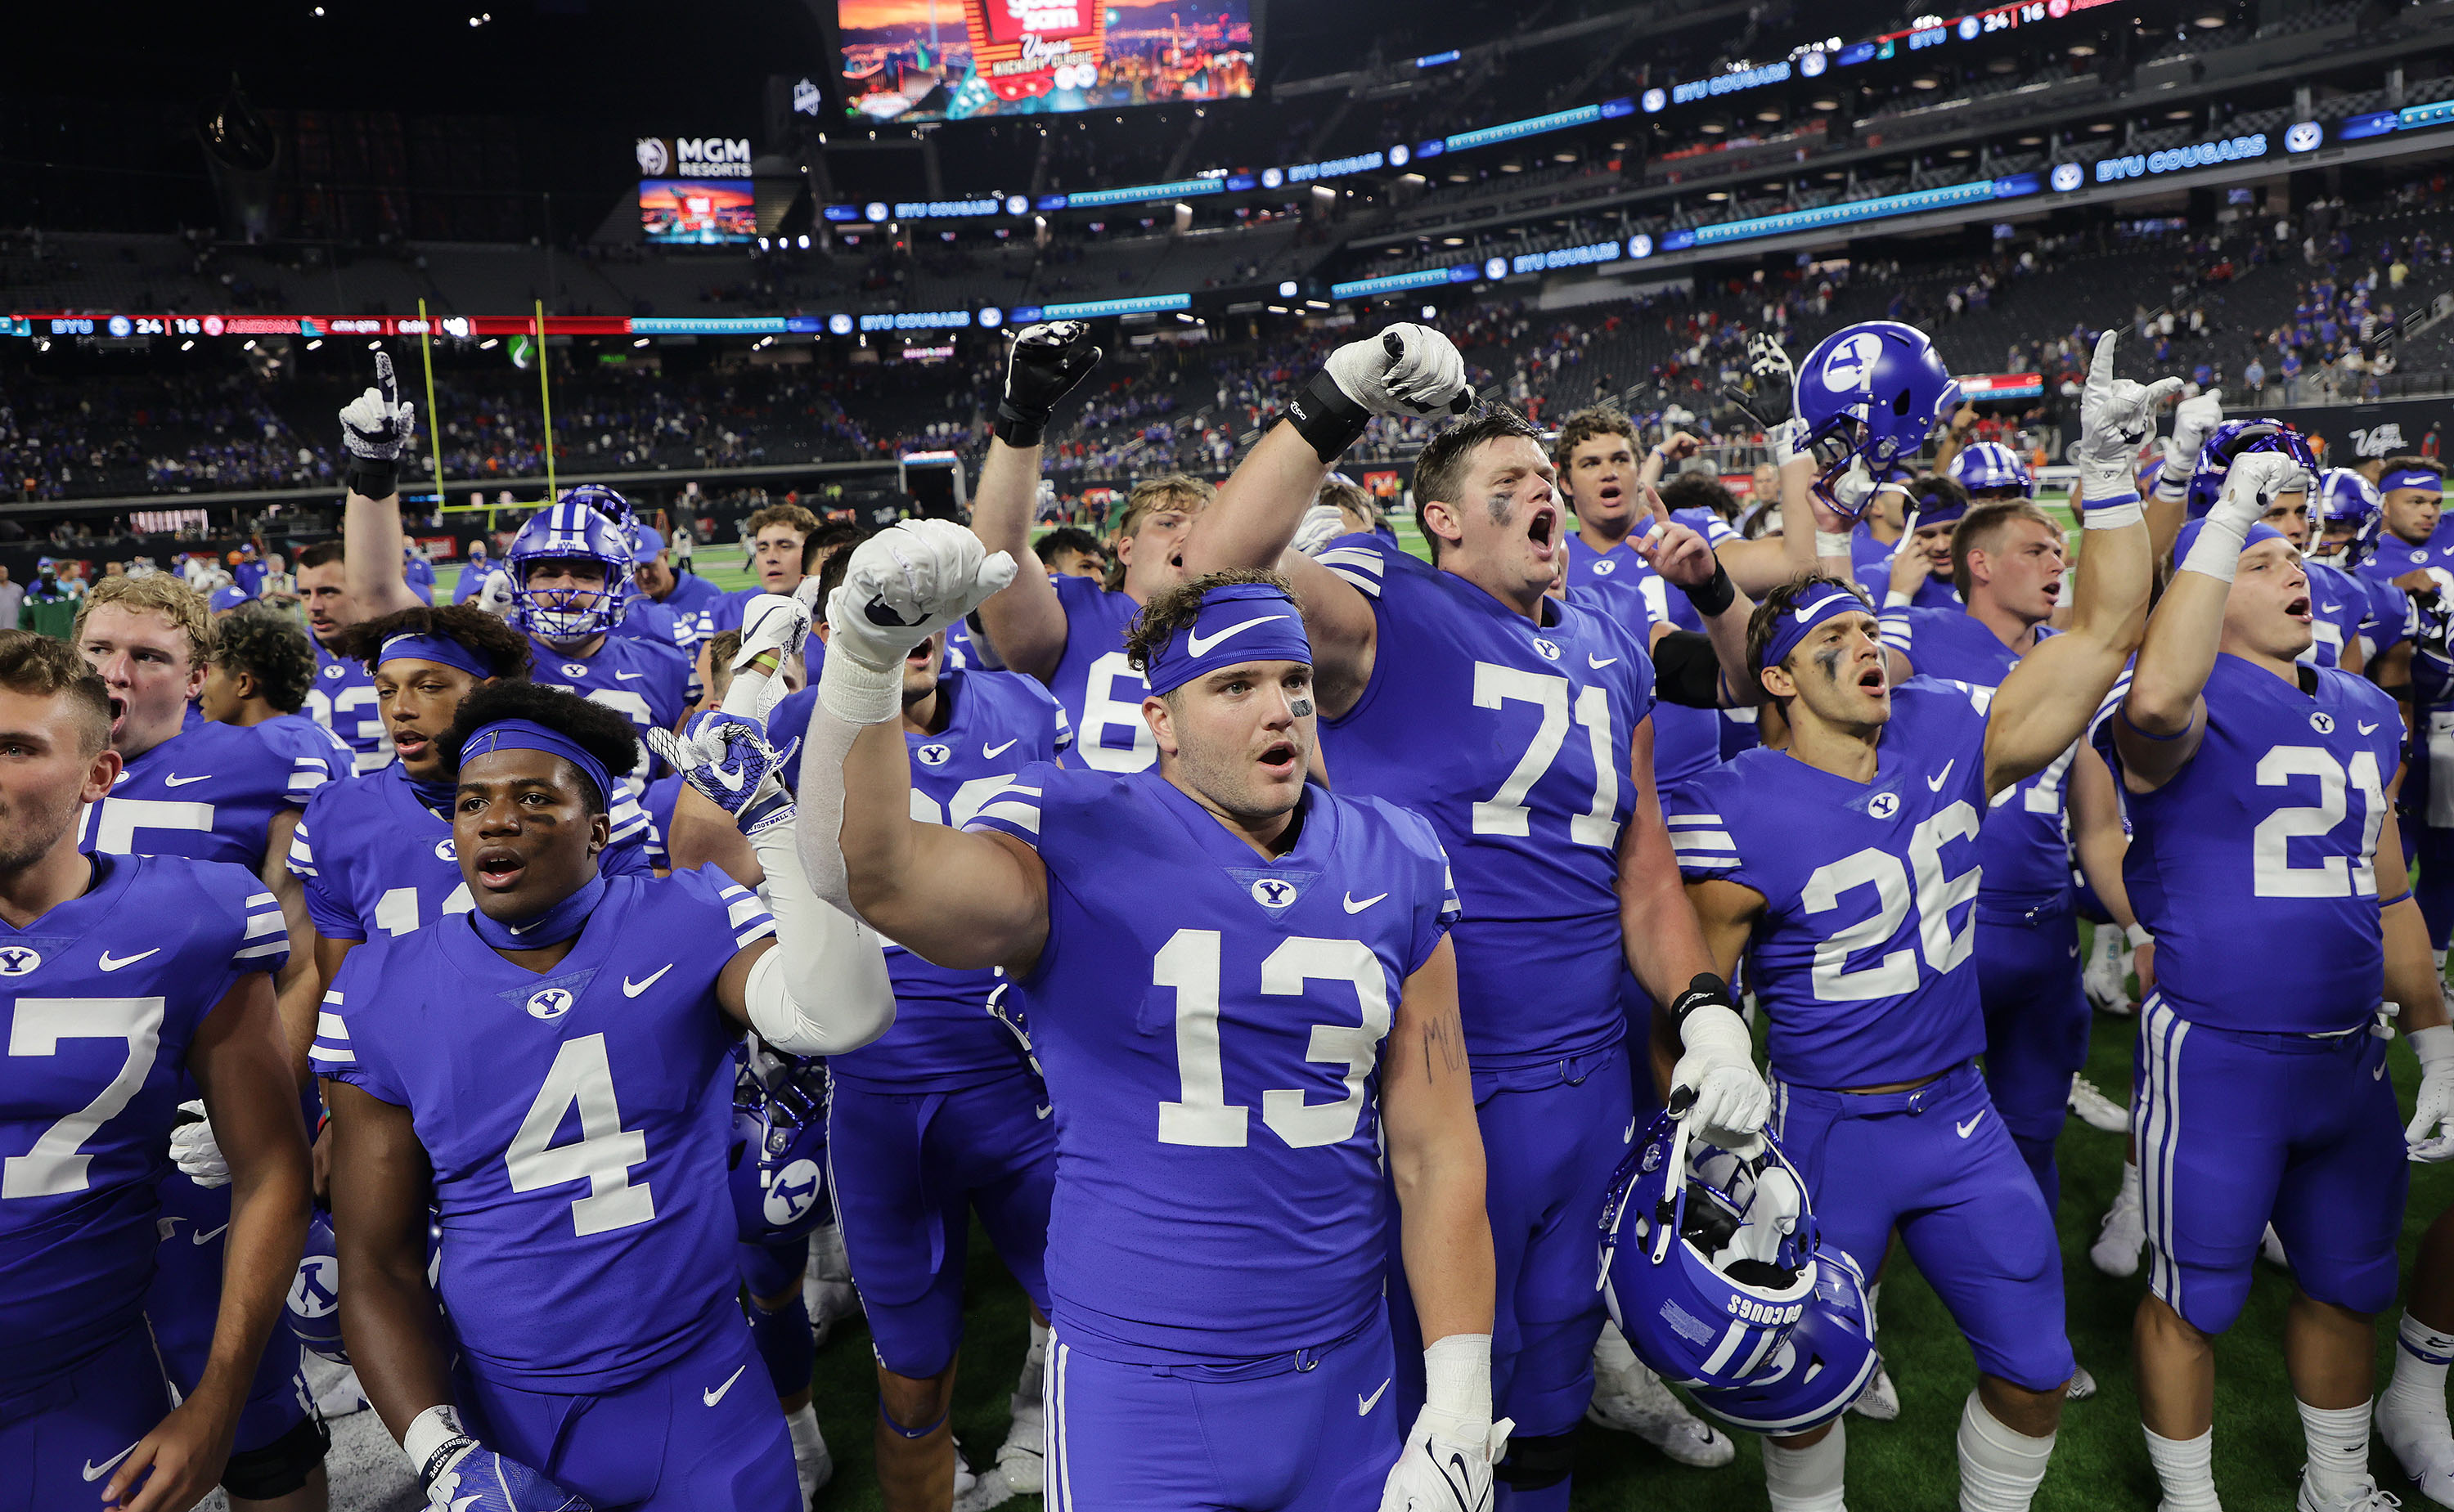 Brigham Young Cougars sing the fight song during the Vegas Kickoff Classic in Las Vegas on Saturday, Sept. 4, 2021. BYU won 24-16.